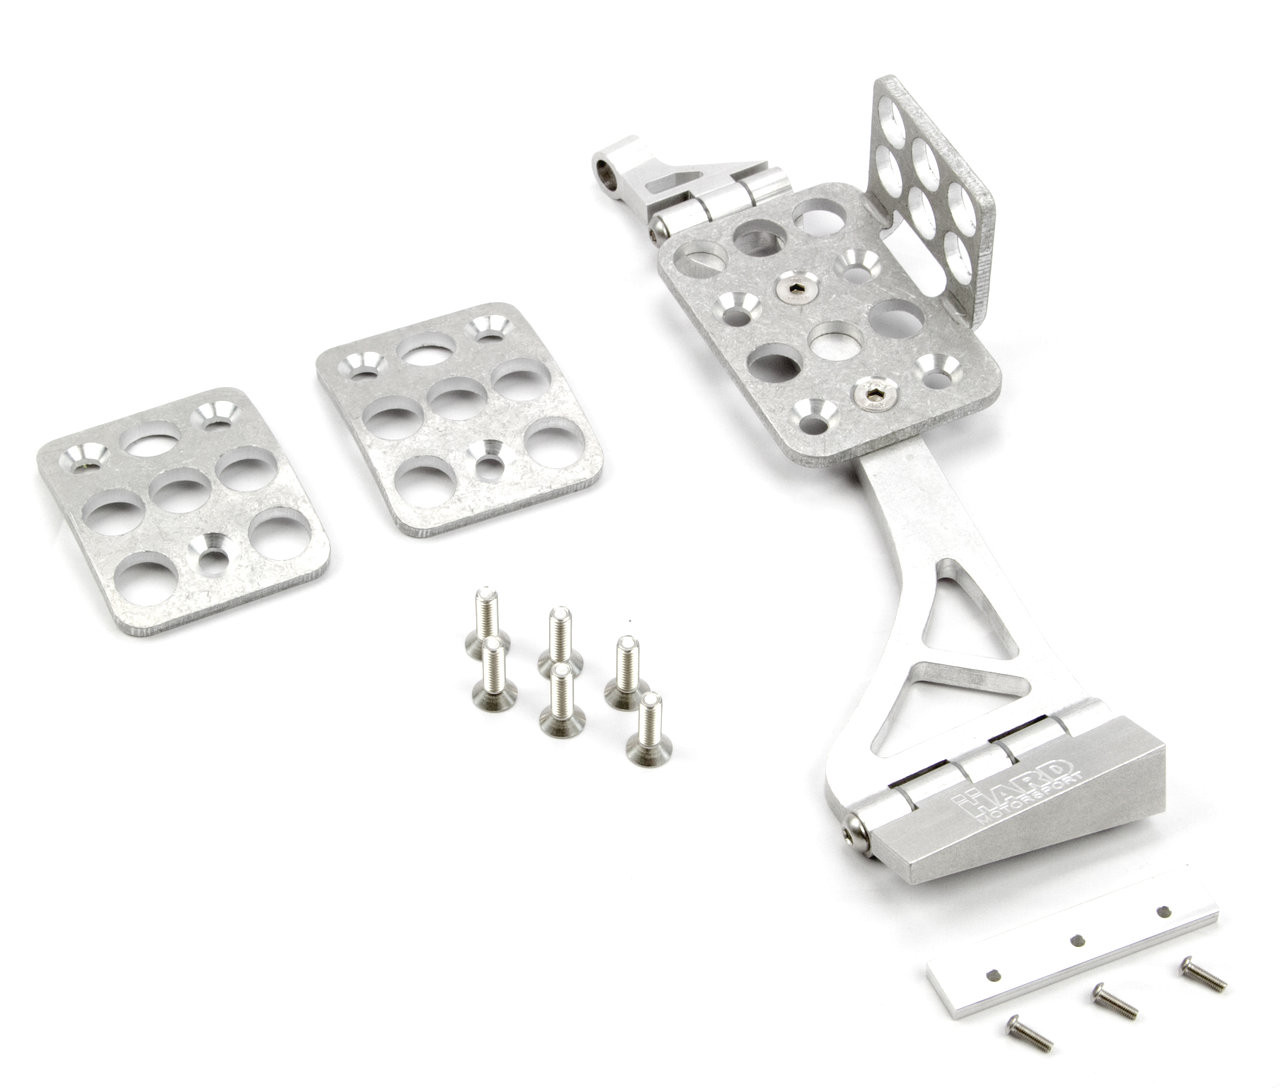 BMW E36 M3 Adjustable Aluminum Racing Pedal Kit.